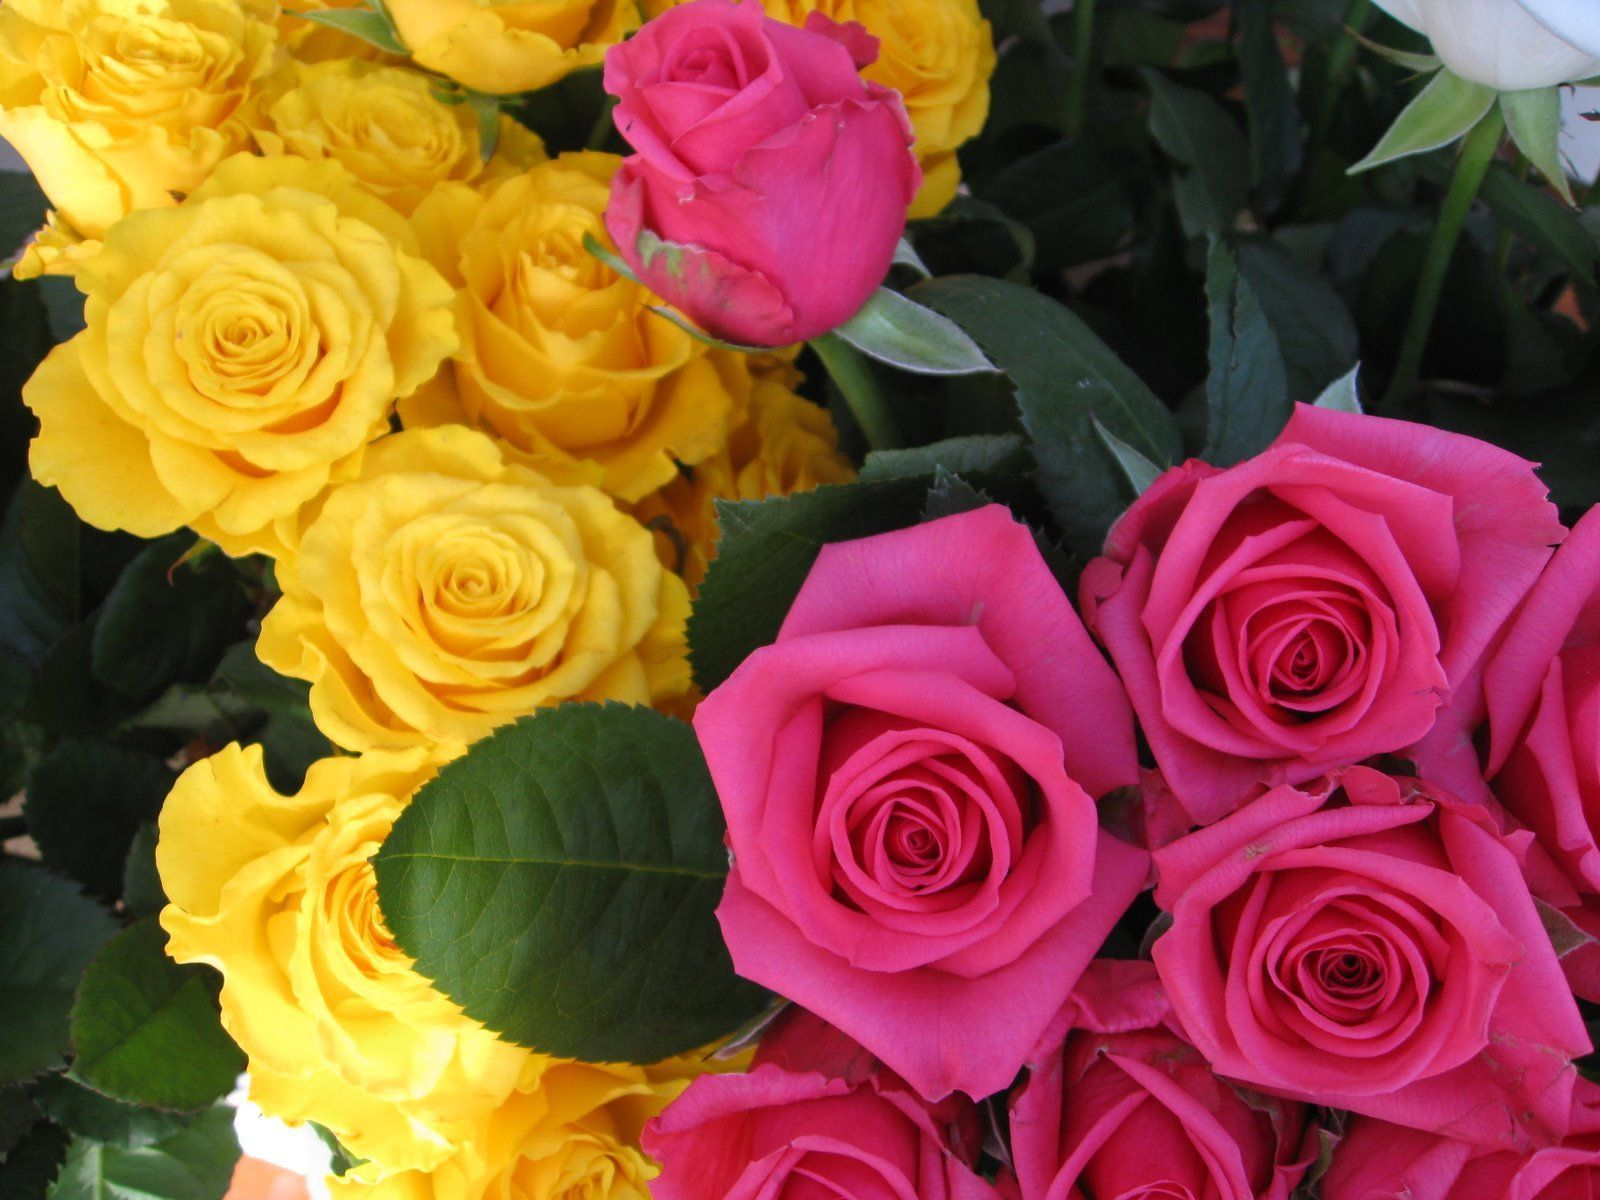 Yellow Rose Wallpapers Abov 1920 1080 Yellow Roses Images Wallpapers 60 Wallpapers Adora Yellow Rose Flower Rose Flower Wallpaper Birthday Flowers Bouquet